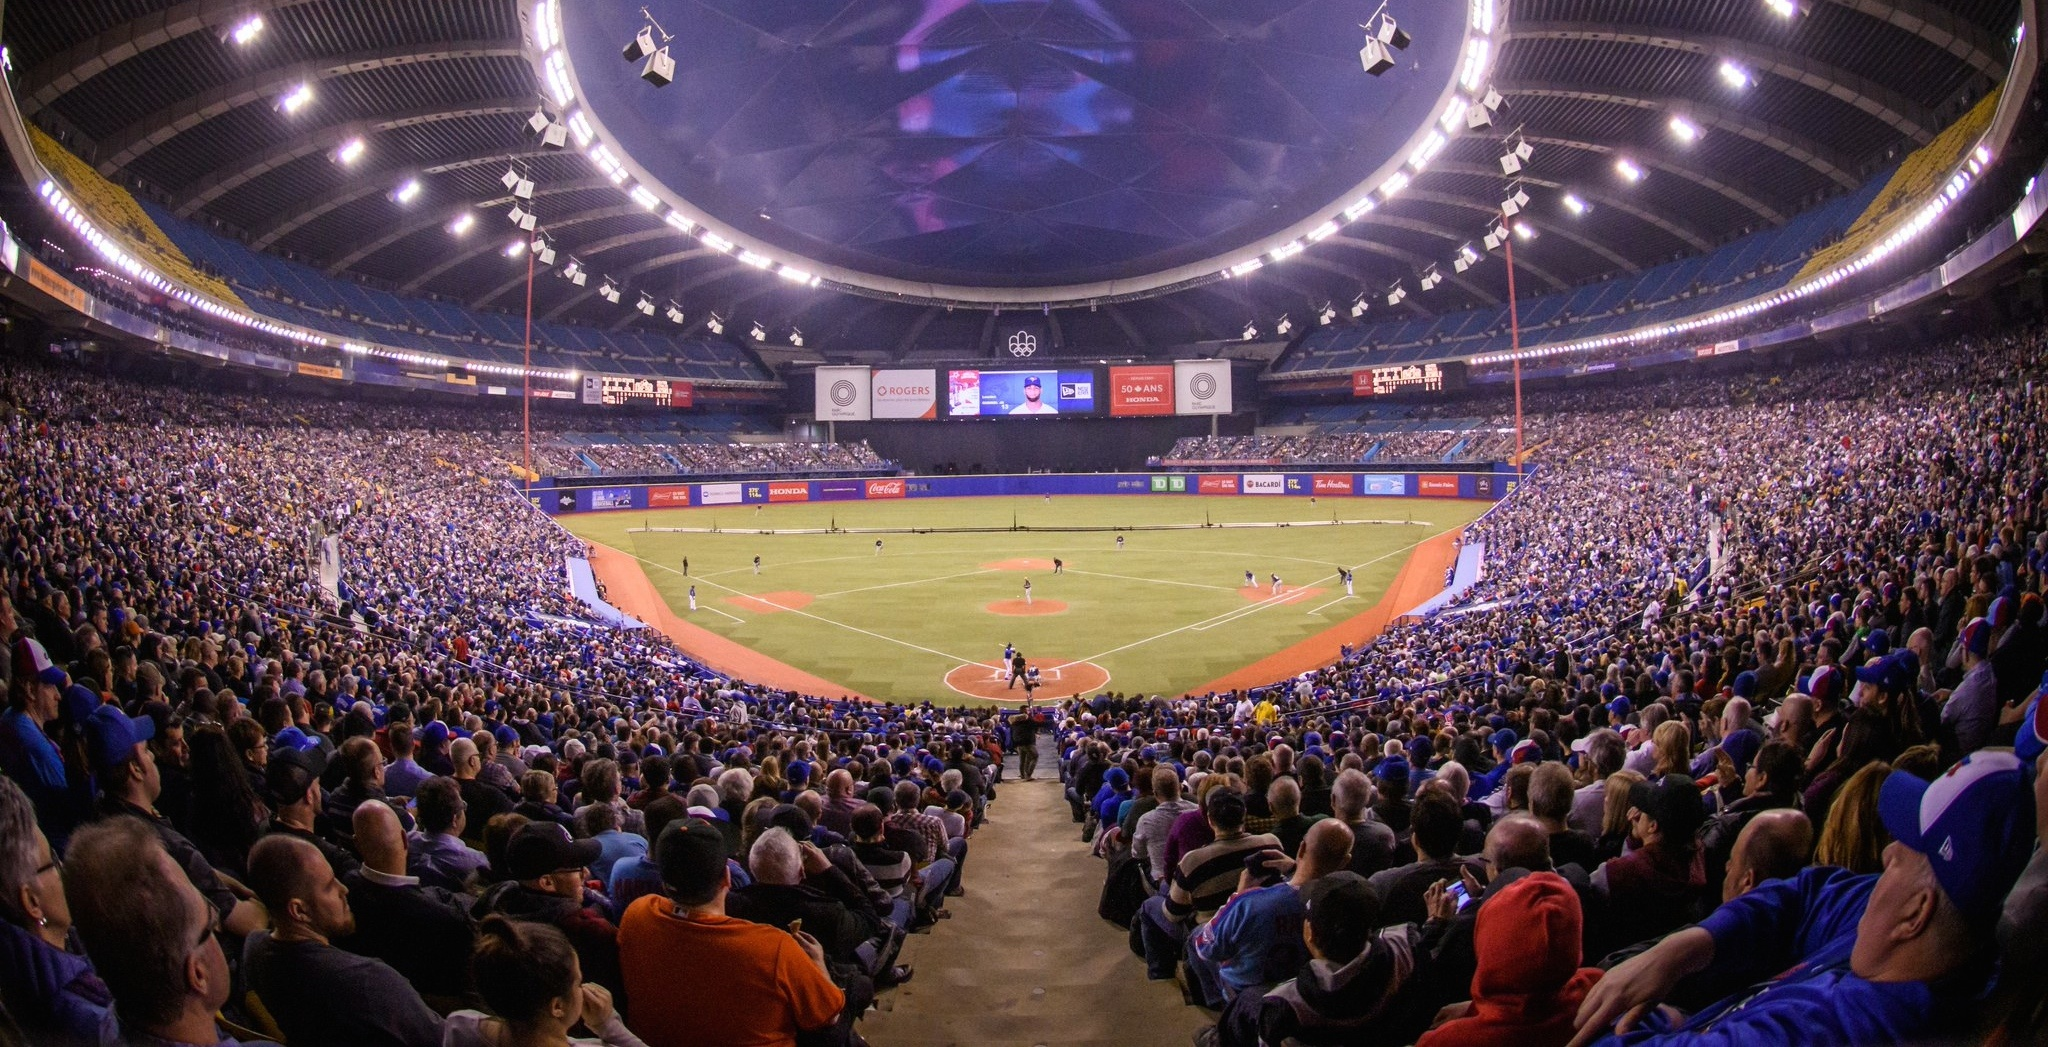 Montreal shows it has the fan base to make an MLB team work again